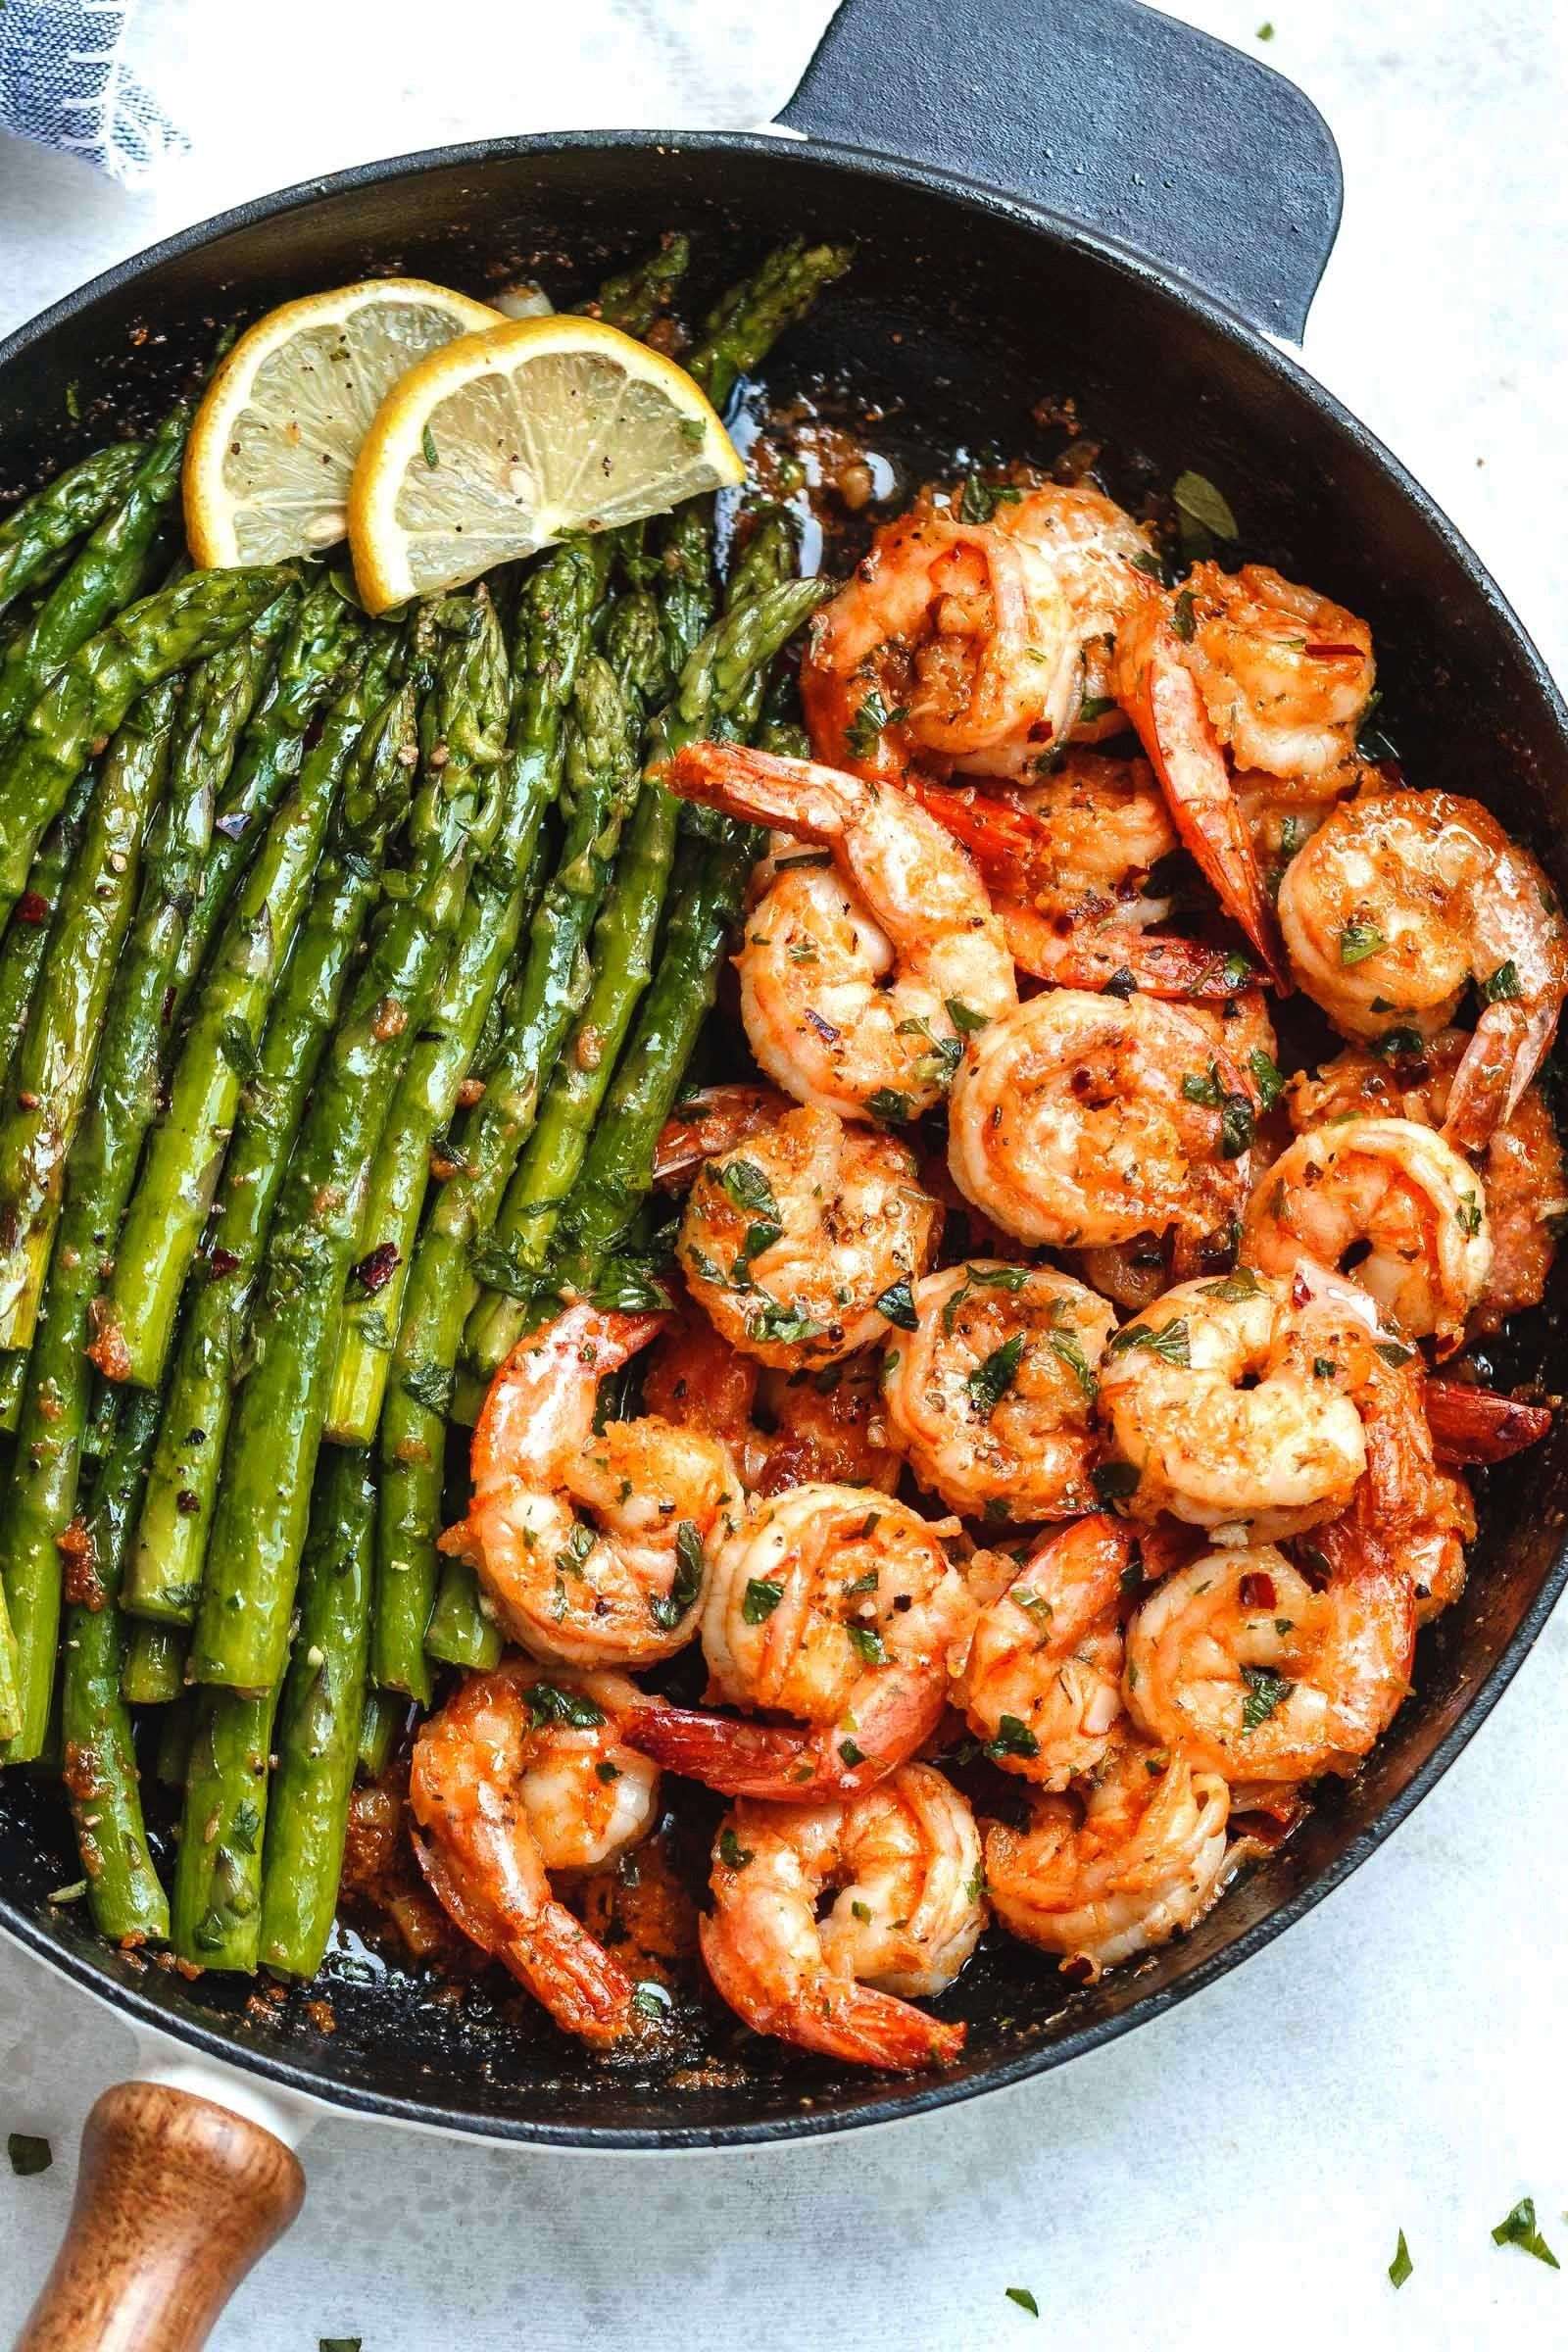 Garlic Butter Shrimp with Asparagus - So much flavor and so easy to throw together, this shrimp din